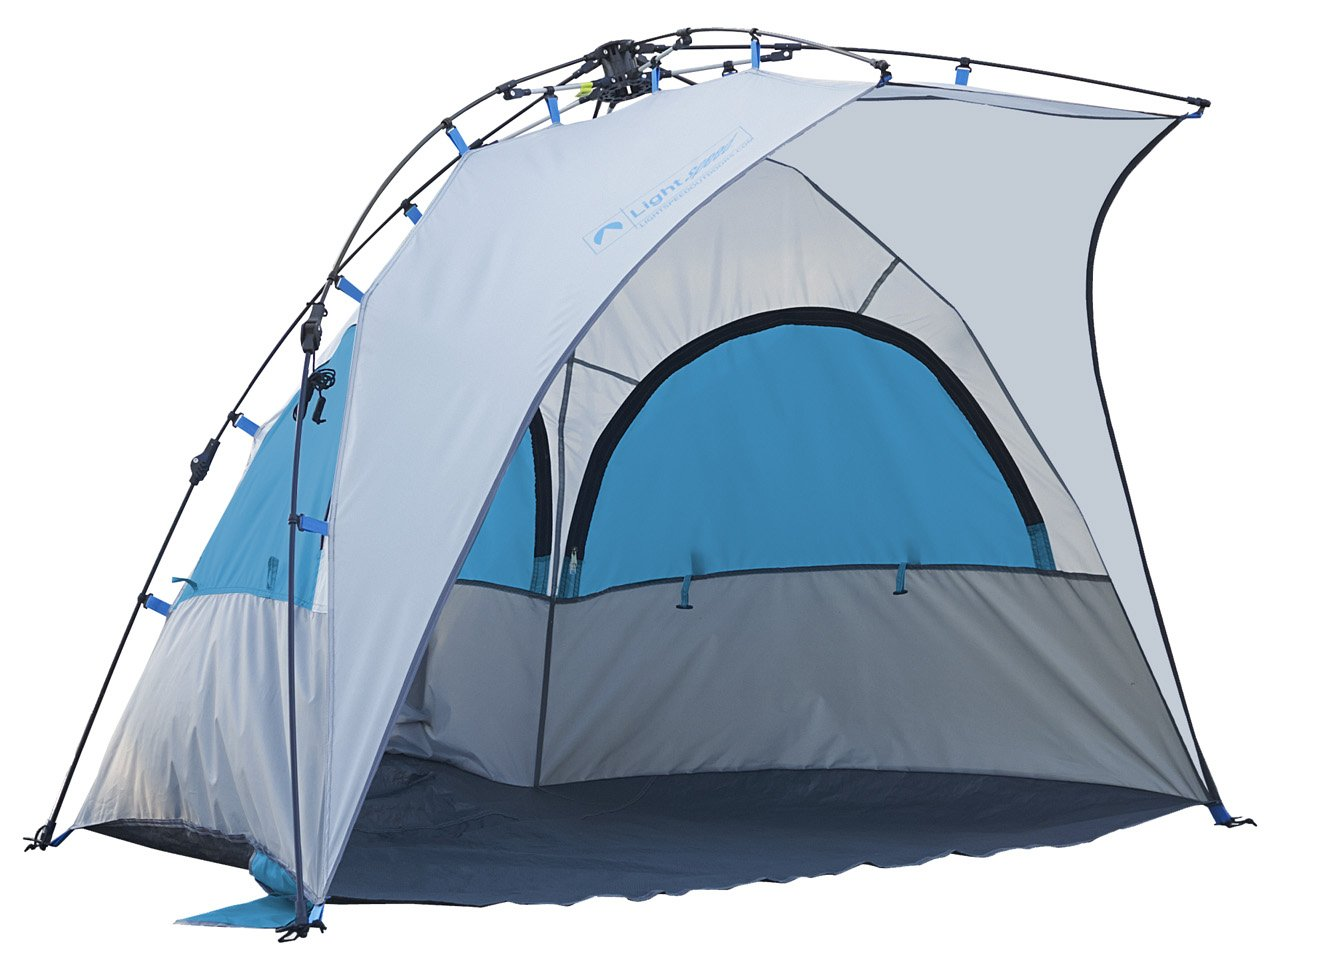 Amazon.com Lightspeed Outdoors Bahia Quick Pop Up Beach Sun Shade Blue Sports u0026 Outdoors  sc 1 st  Amazon.com & Amazon.com: Lightspeed Outdoors Bahia Quick Pop Up Beach Sun Shade ...